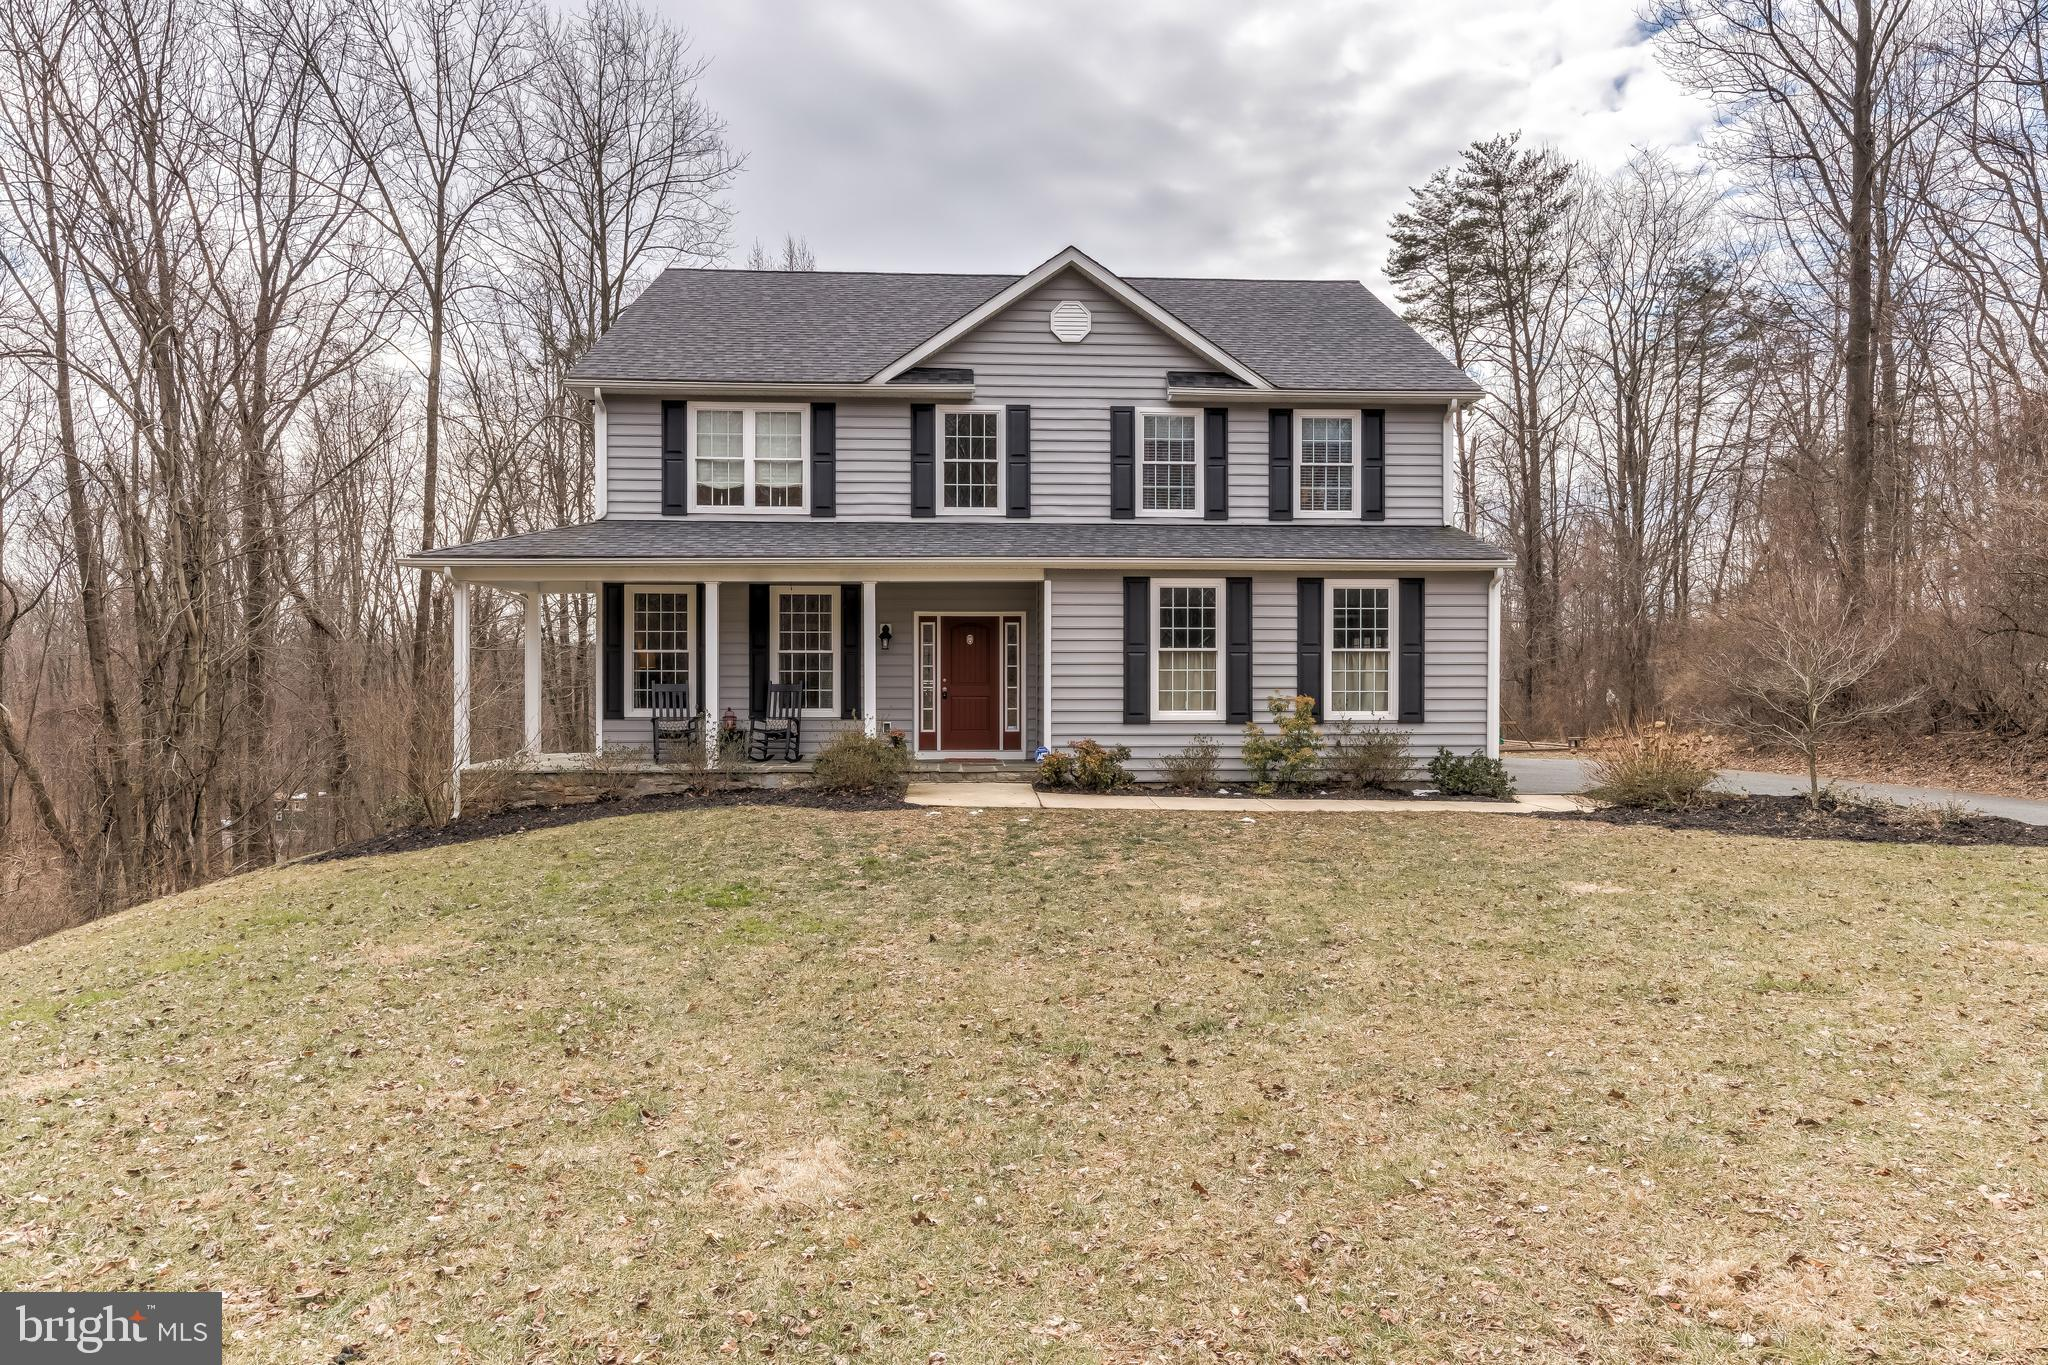 1723 O'CONNER ROAD, FOREST HILL, MD 21050